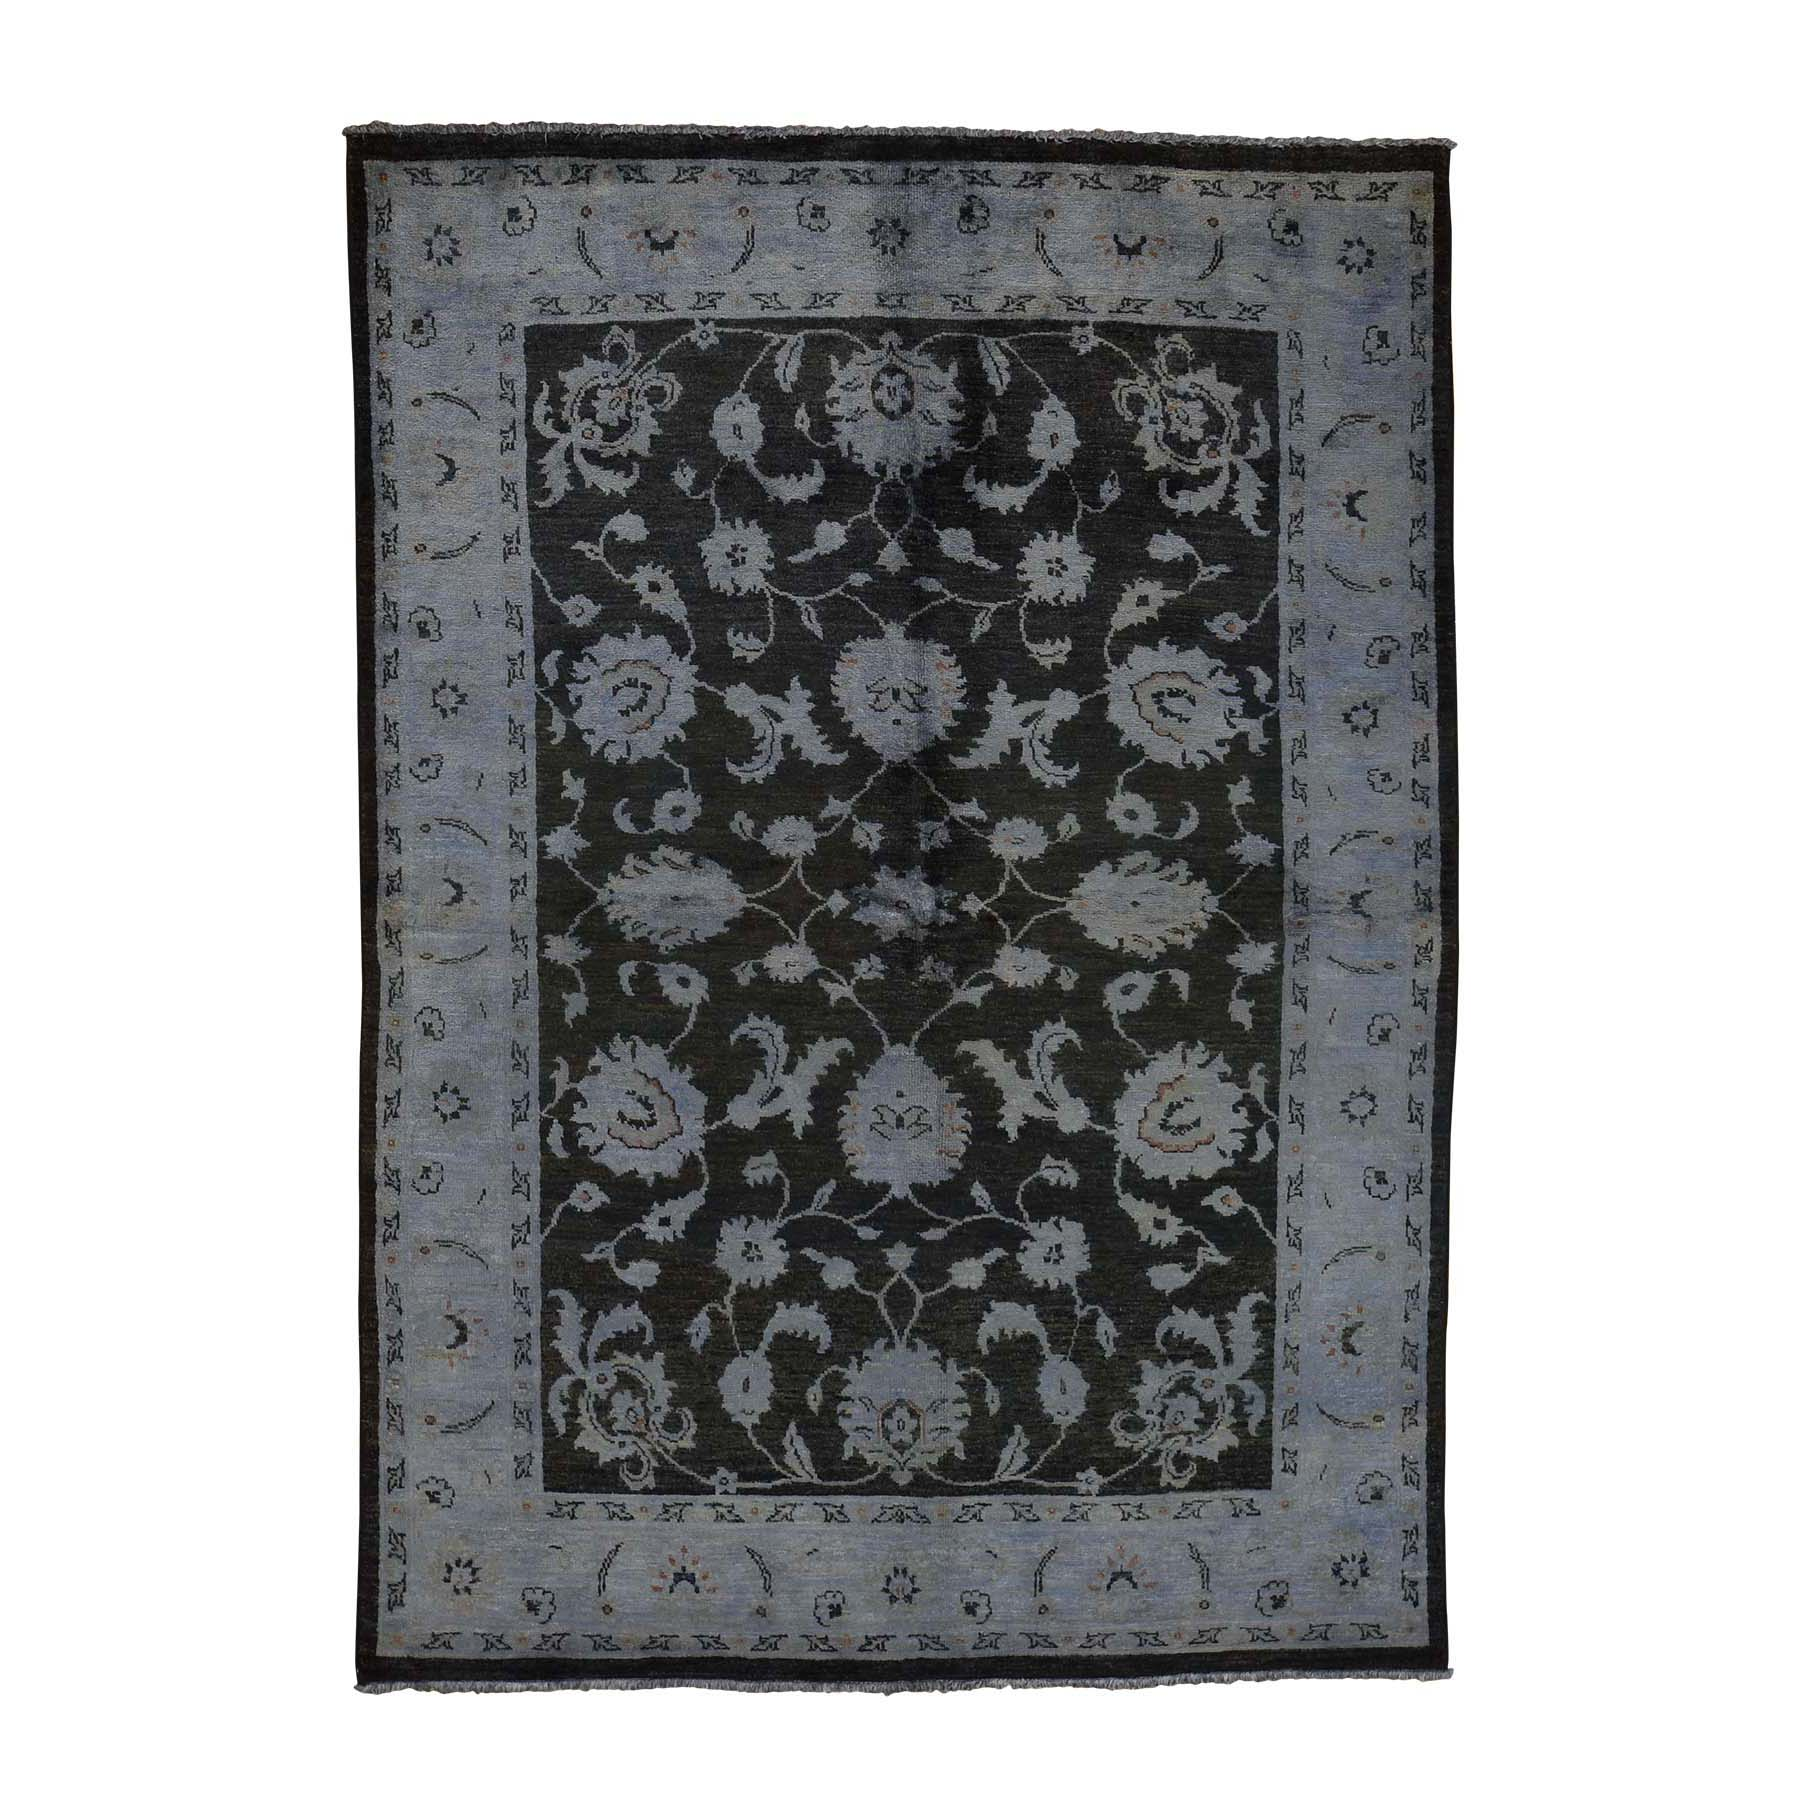 5'X7' Overdyed Peshawar Hand Knotted Pure Wool Oriental Rug moac9eaa